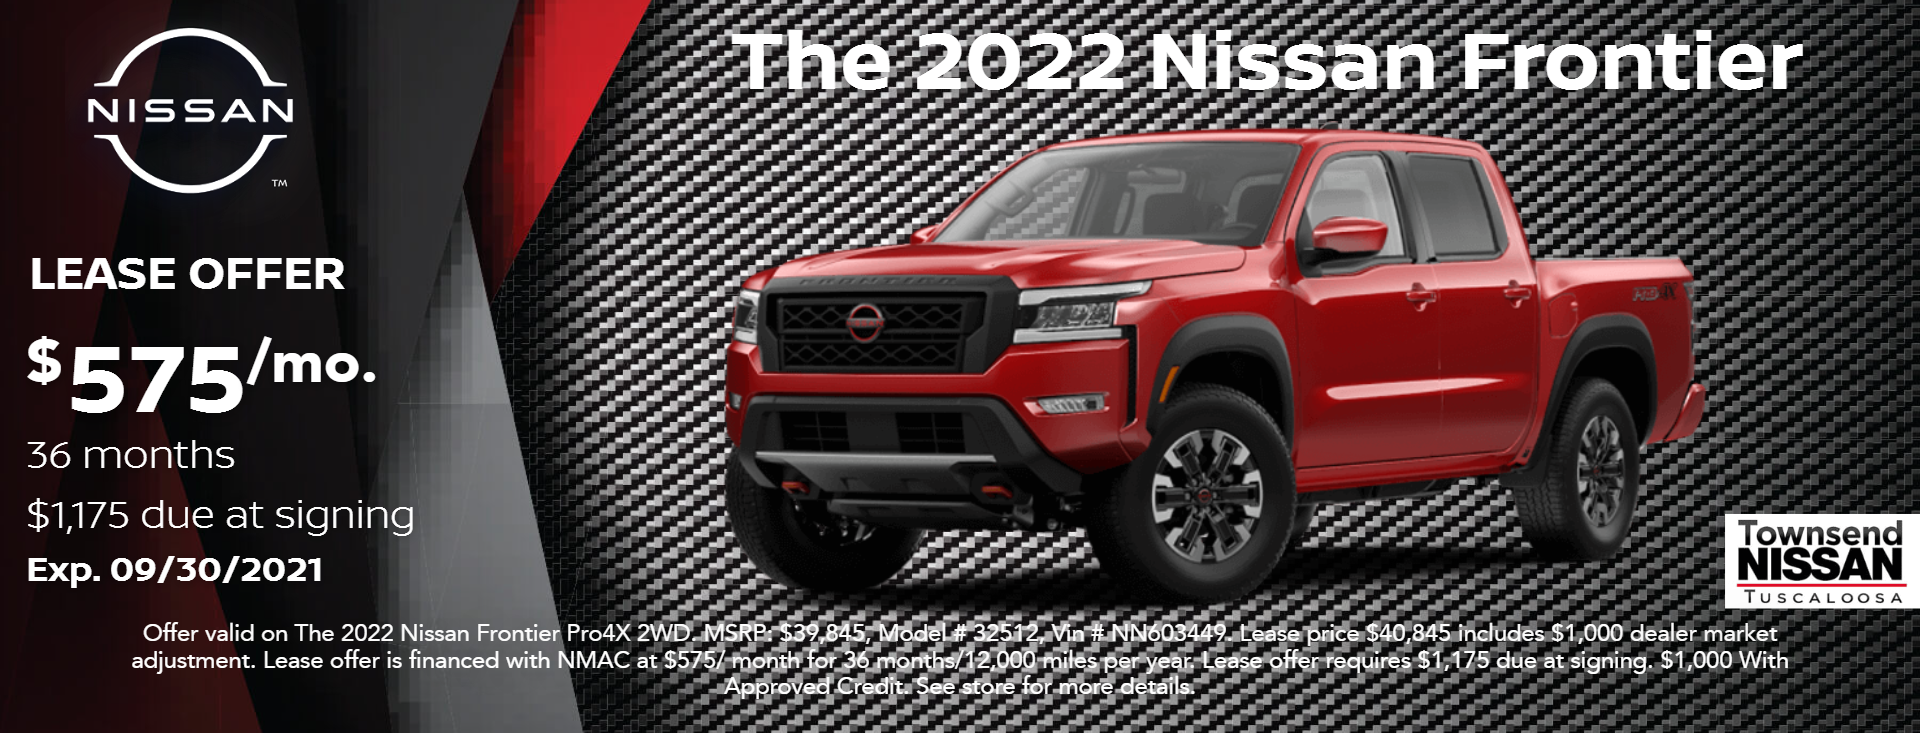 2022_Nissan_Frontier_Crew Cab Pro-4X_Wed Sep 15 2021 15_15_06 GMT-0500 (Central Daylight Time)